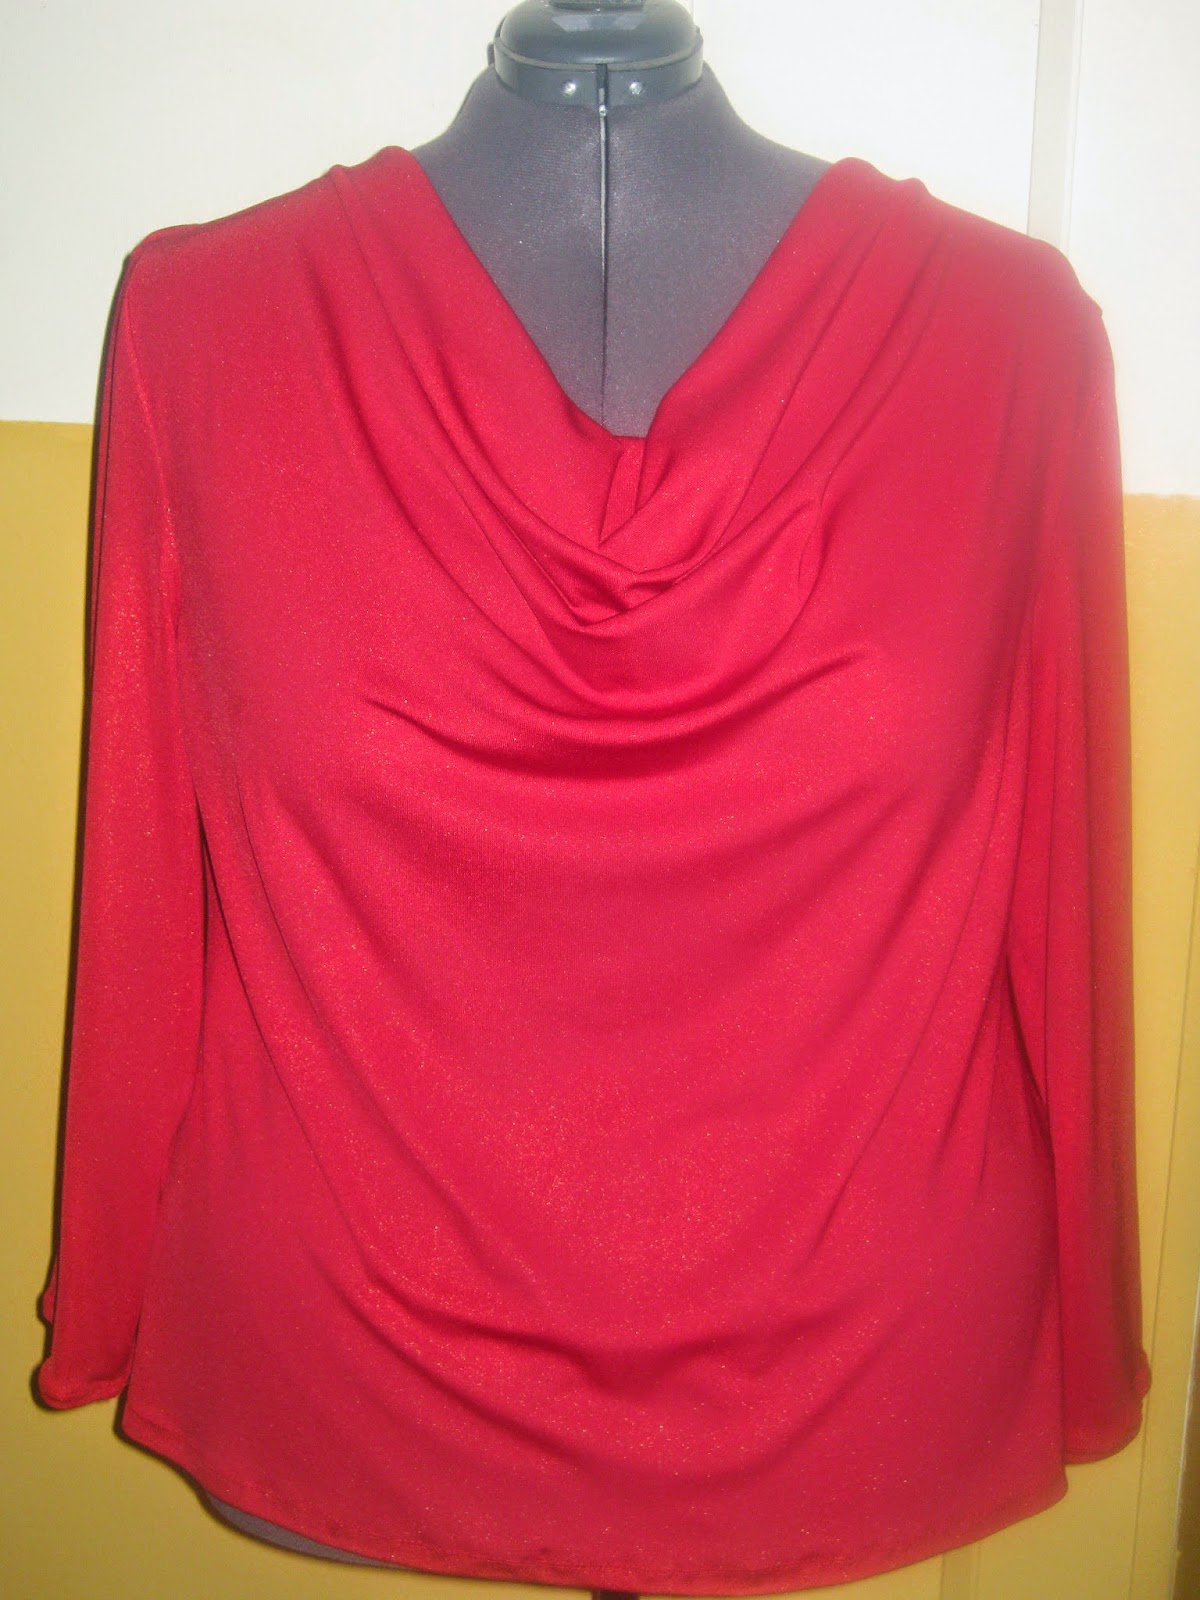 Red Cowl Neck Top www.sewplus.blogspot.com